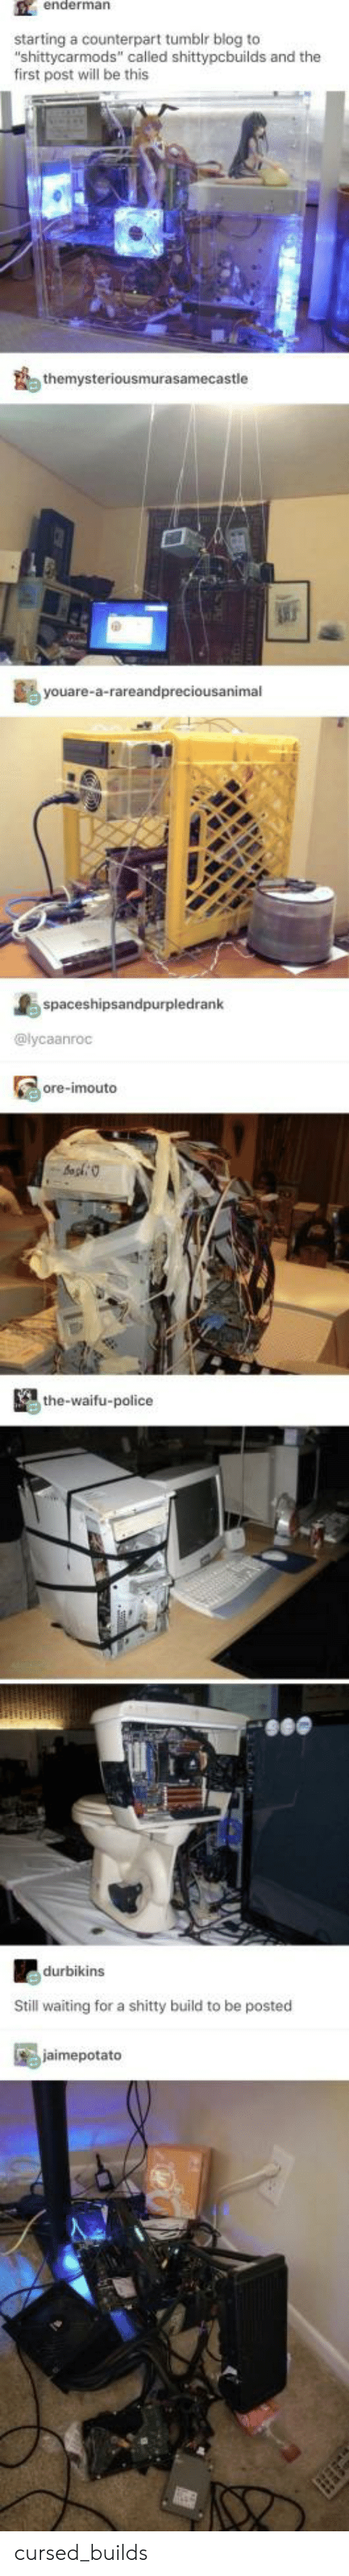 """Waifu: enderman  starting a counterpart tumblr blog to  """"shittycarmods"""" called shittypcbuilds and the  first post will be this  themysteriousmurasamecastle  youare-a-rareandpreciousanimal  spaceshipsandpurpledrank  @lycaanroc  ore-imouto  the-waifu-police  durbikins  Still waiting for a shitty build to be posted  jaimepotato cursed_builds"""